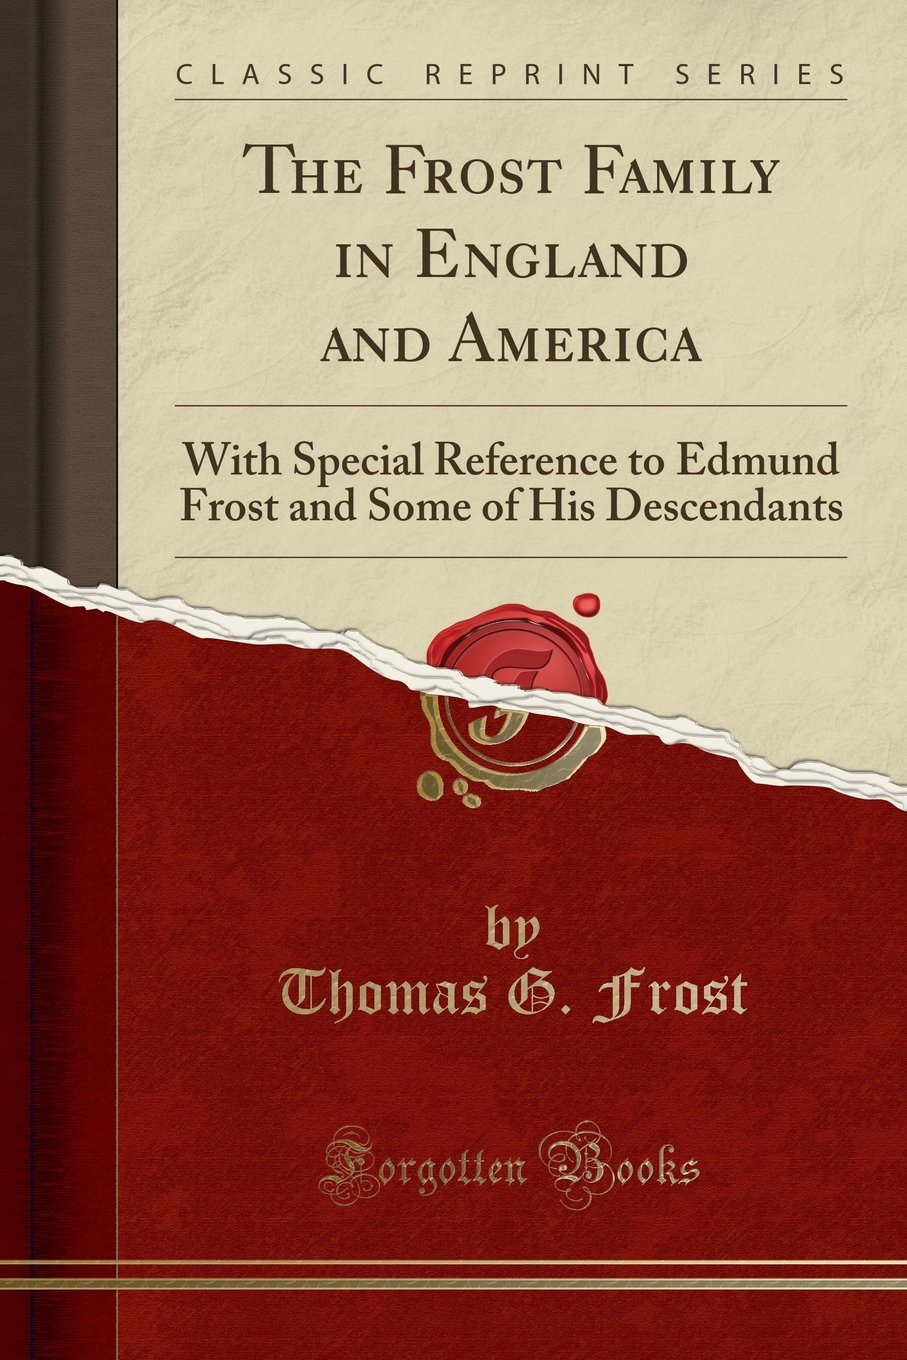 Read Online The Frost Family in England and America: With Special Reference to Edmund Frost and Some of His Descendants (Classic Reprint) ebook